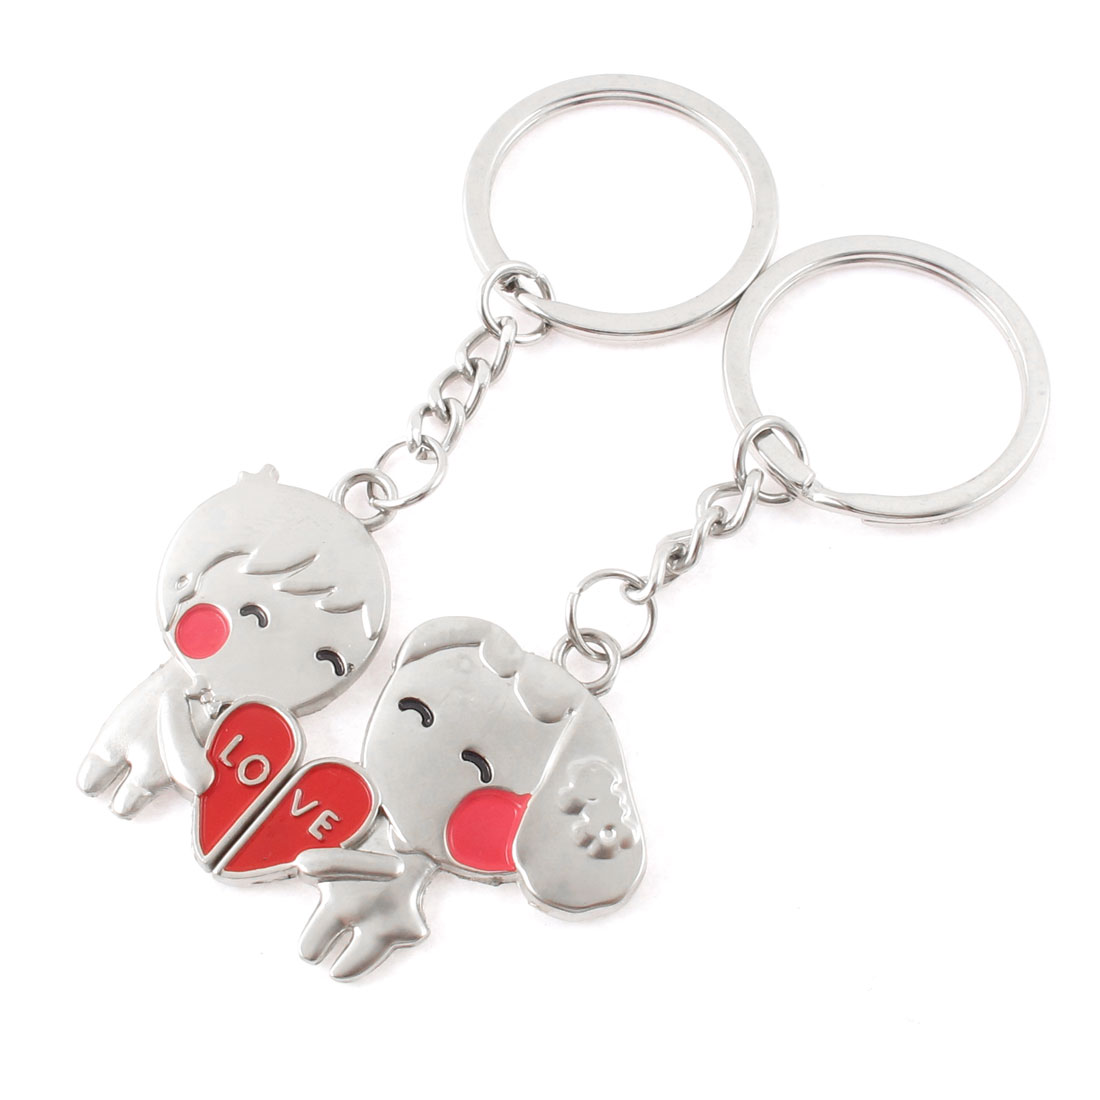 2 Pcs Cartoon Design Dangling Pendant Decoration Key Fob Keyring Silver Tone